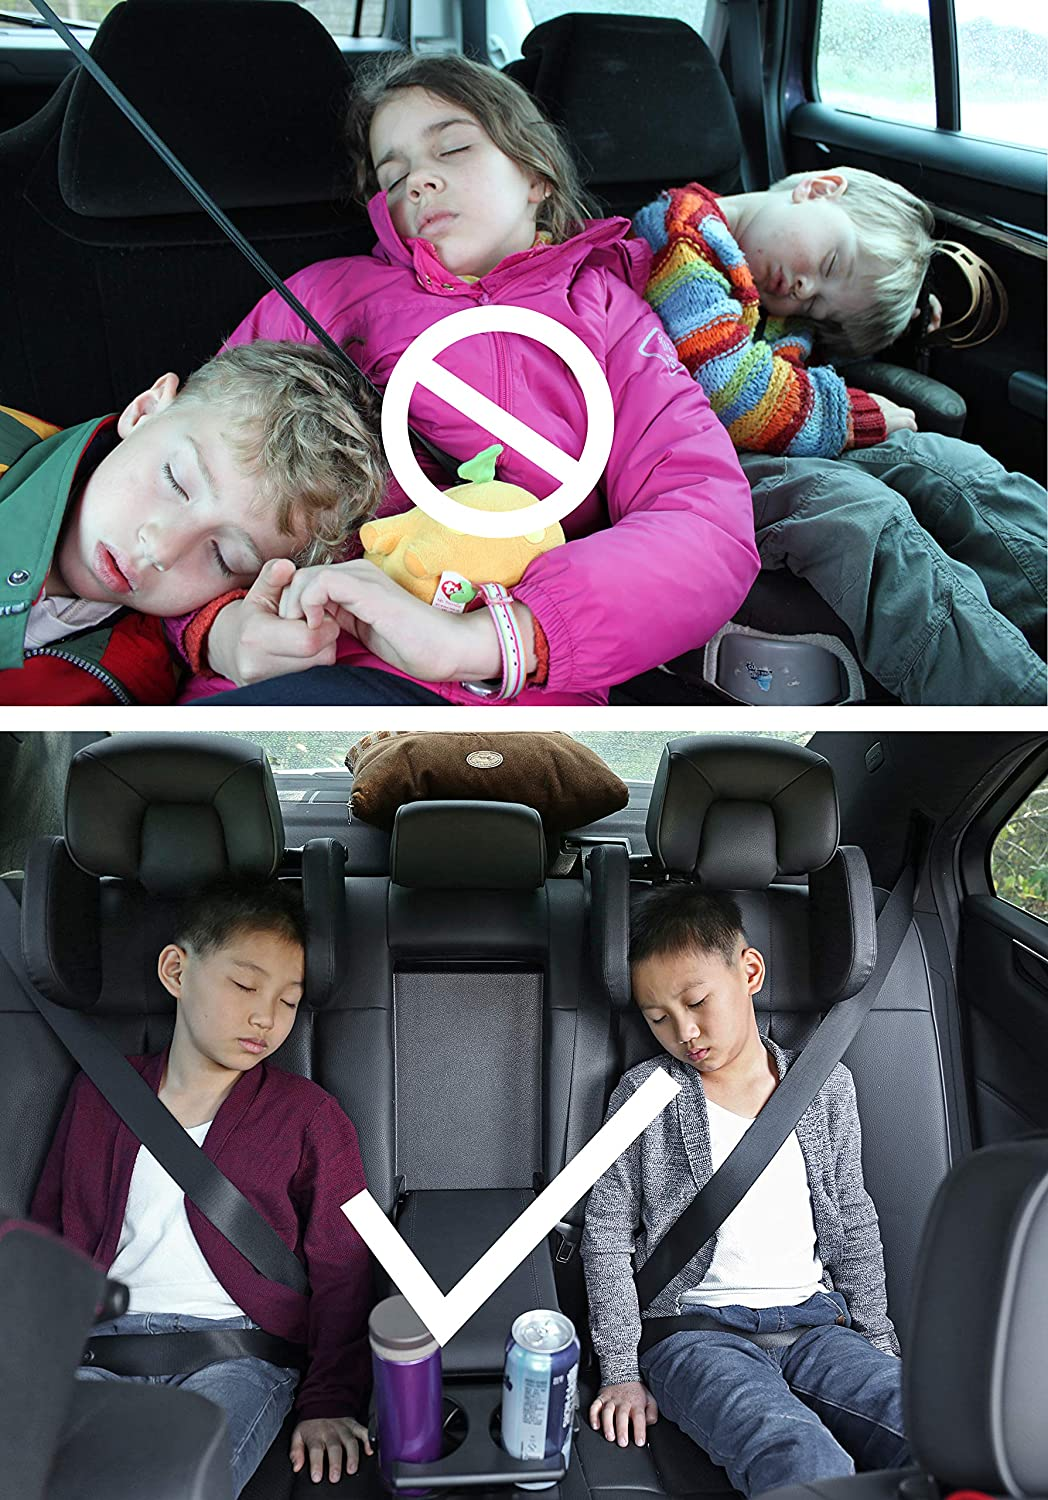 PVC Black A Comfortable and Safe Car Seat Pillow for Head and Neck Support During Car Travel LEADSIGN Ajustable Car Headrest